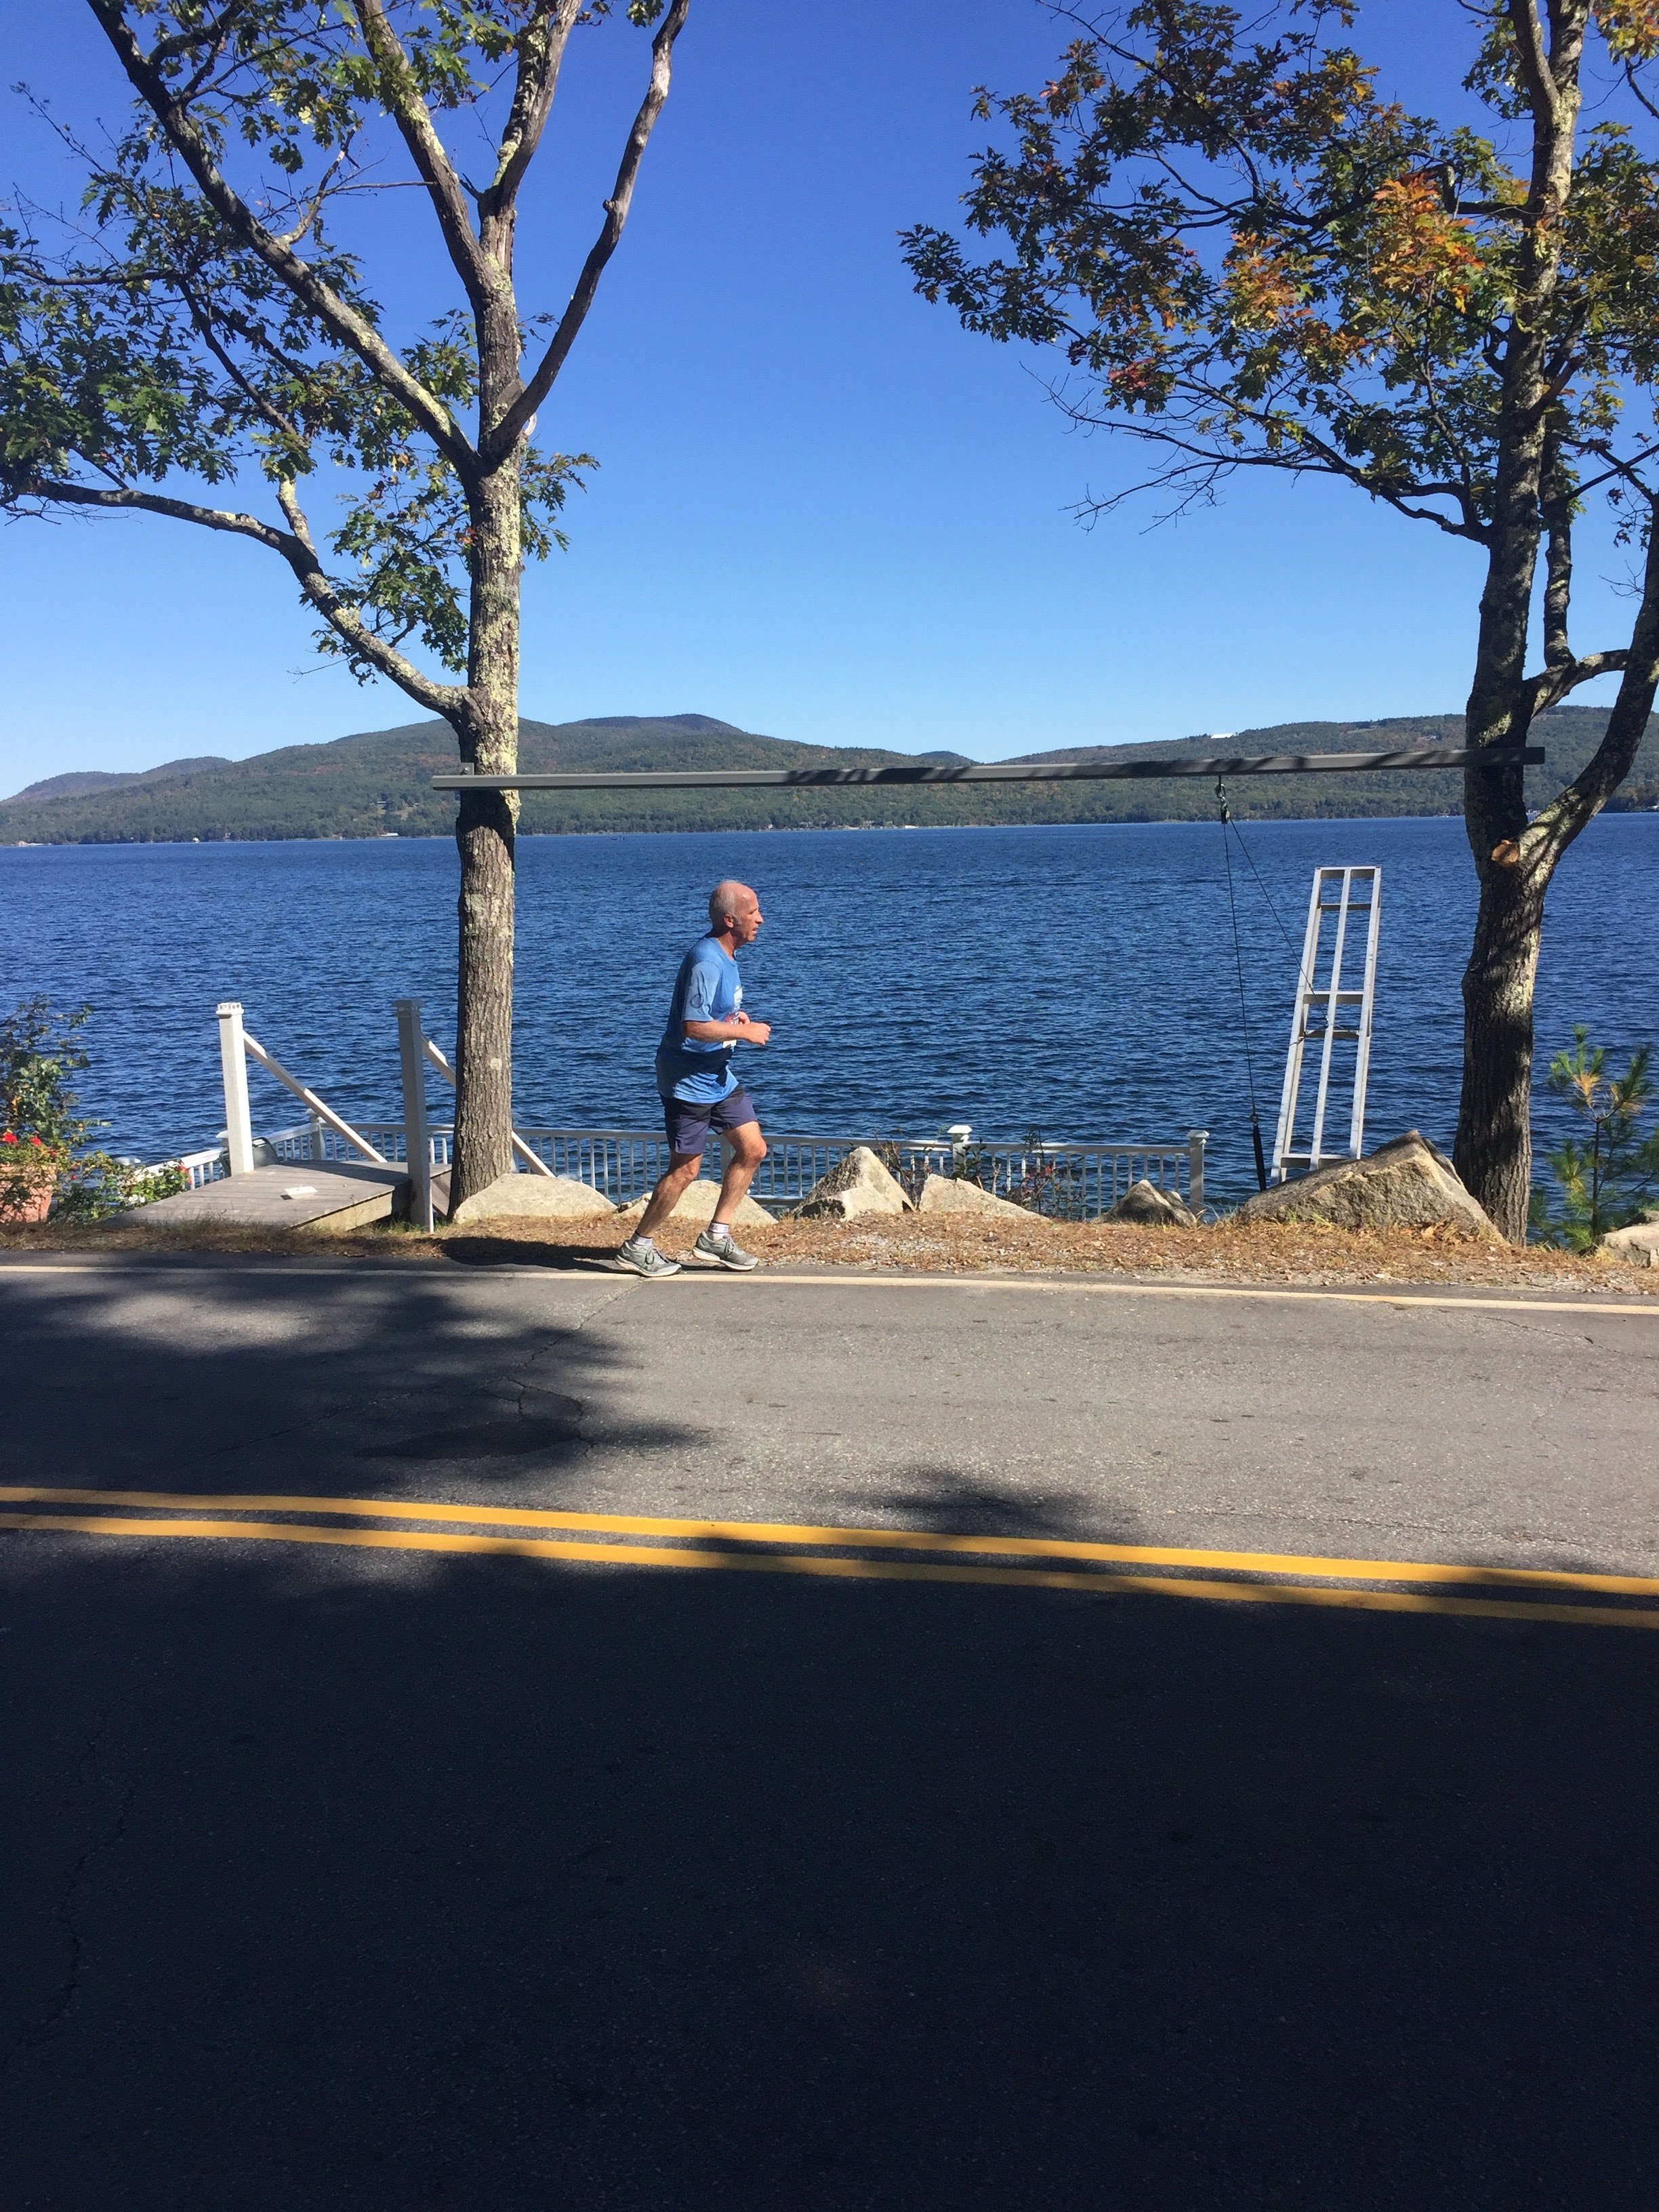 I ran intervals on a treadmill. And I ran a marathon in New Hampshire..